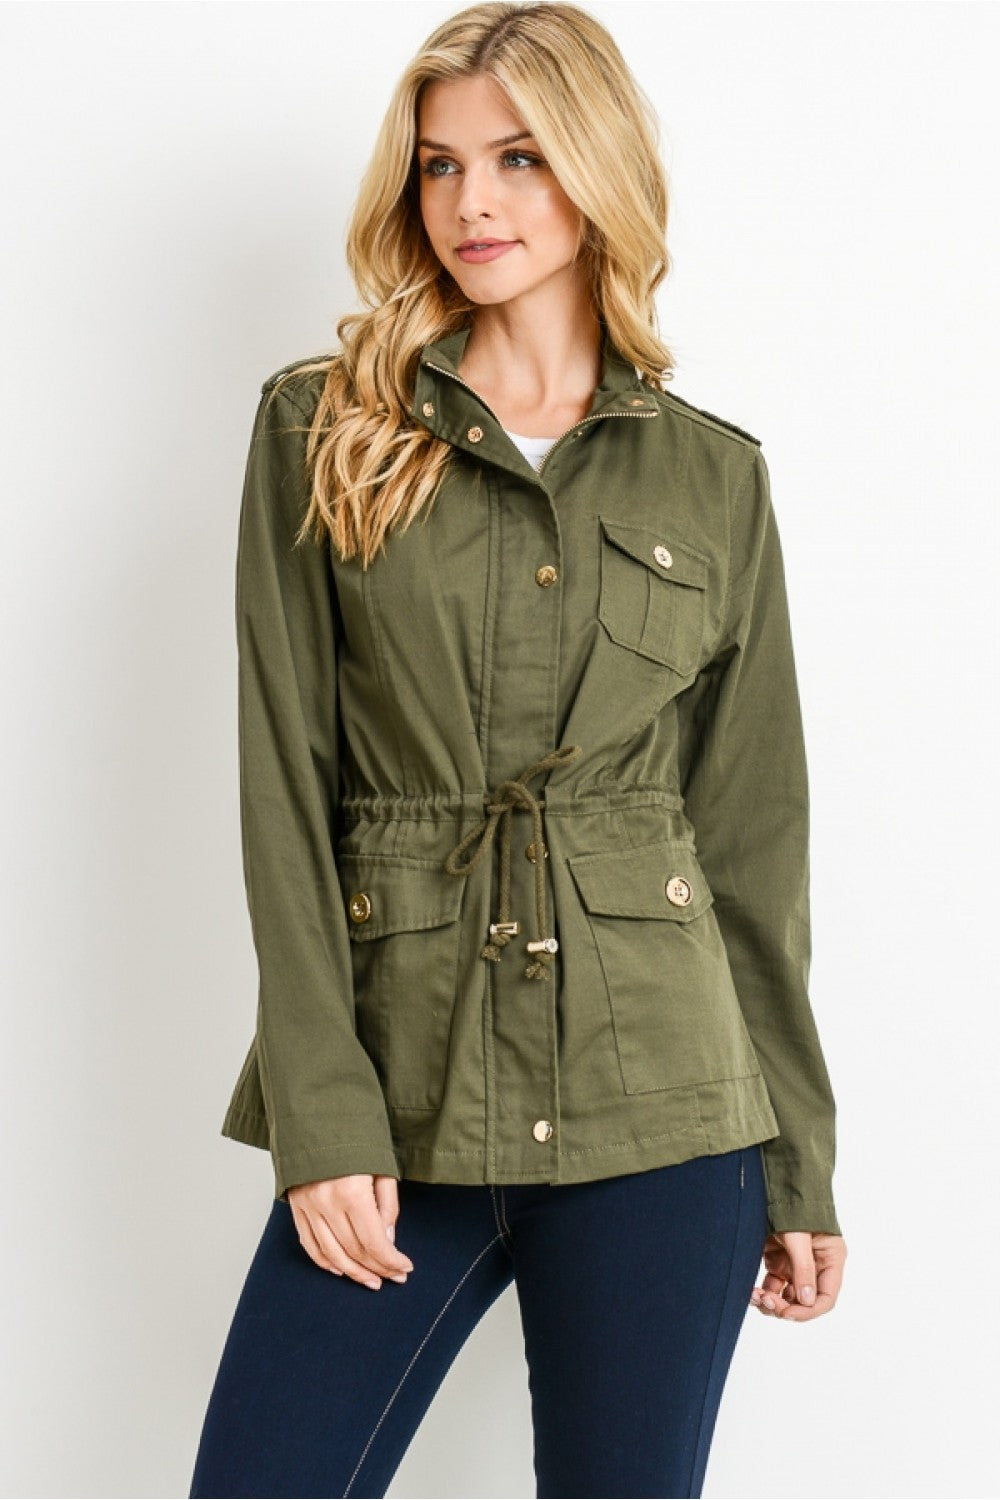 Zip Up Lightweight Military Versatile Utility Anorak Street Fashion Drawstring Adjustable Waist Jacket